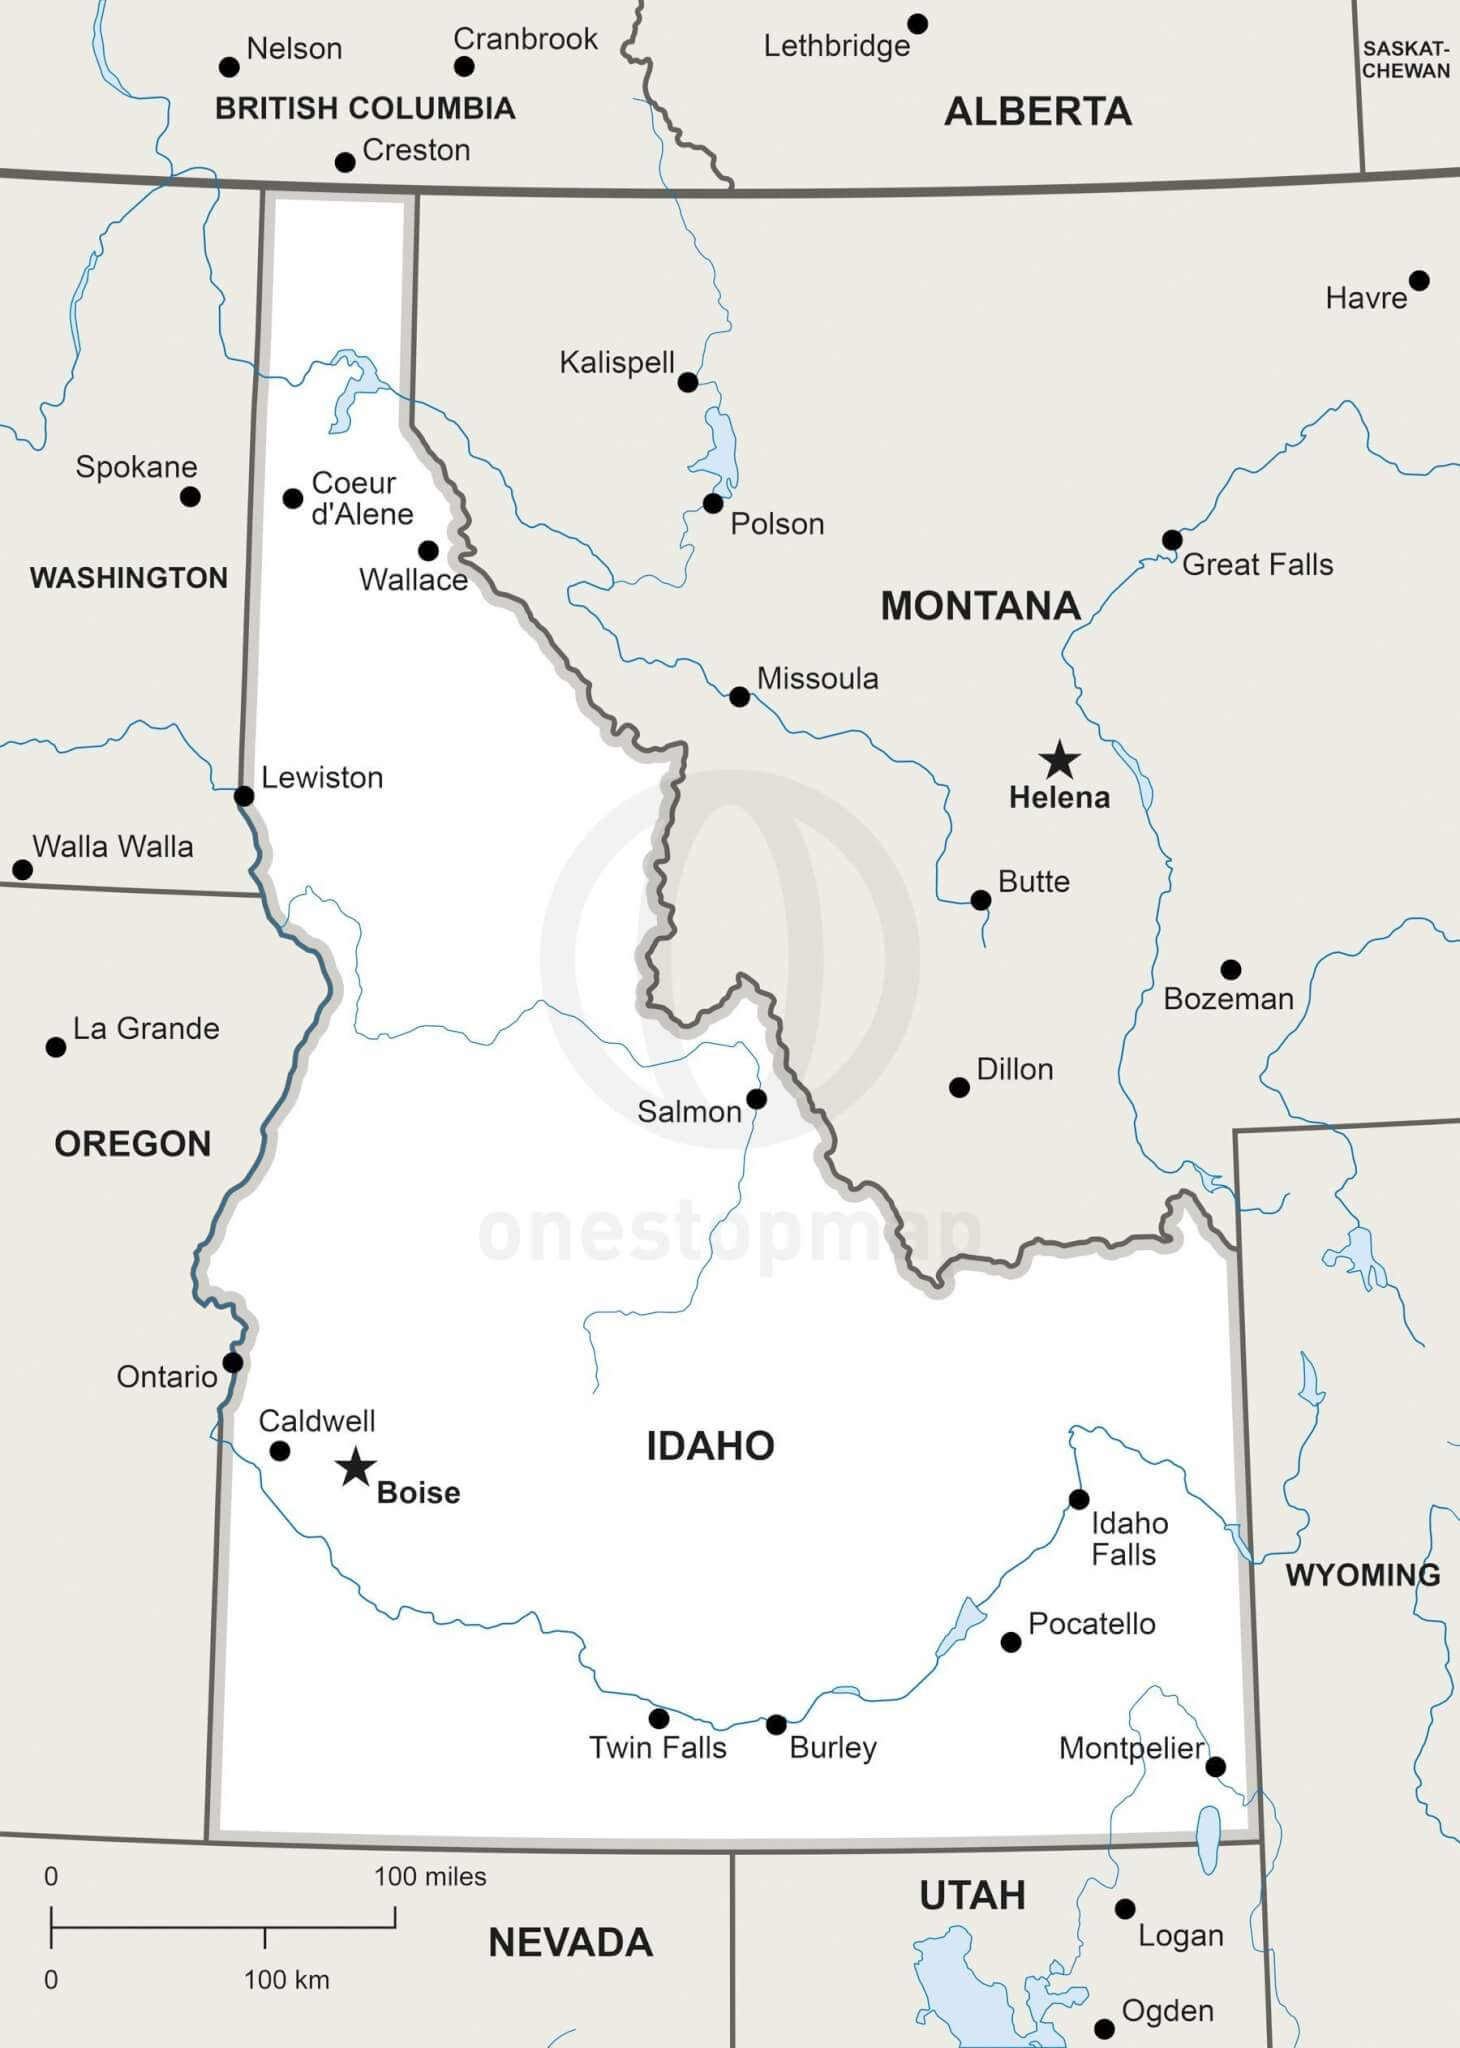 Map of Idaho political